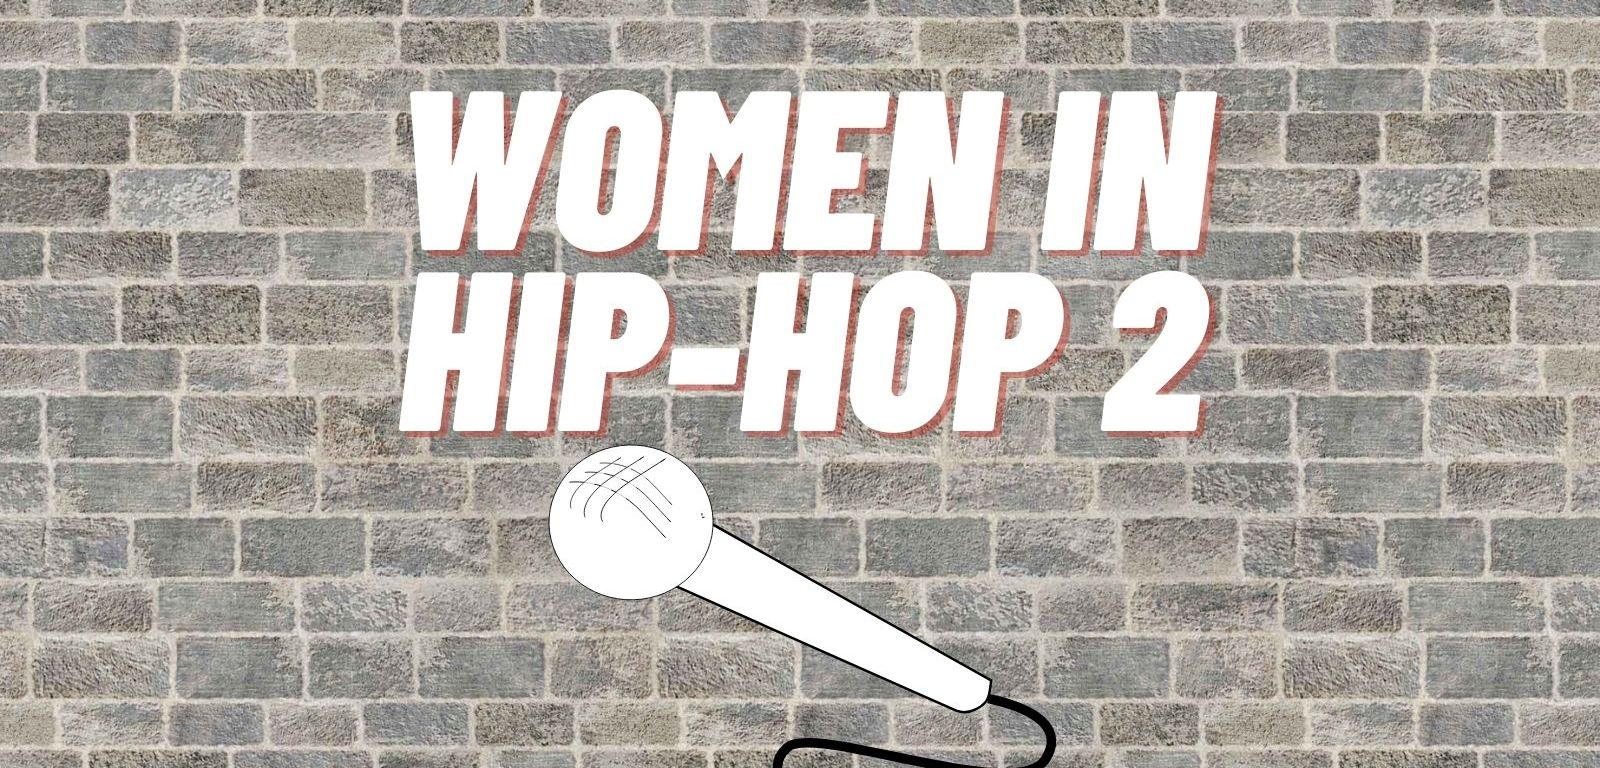 """The background has grey bricks and the white text reads """"Women in Hip-Hop 2"""" with a white microphone"""